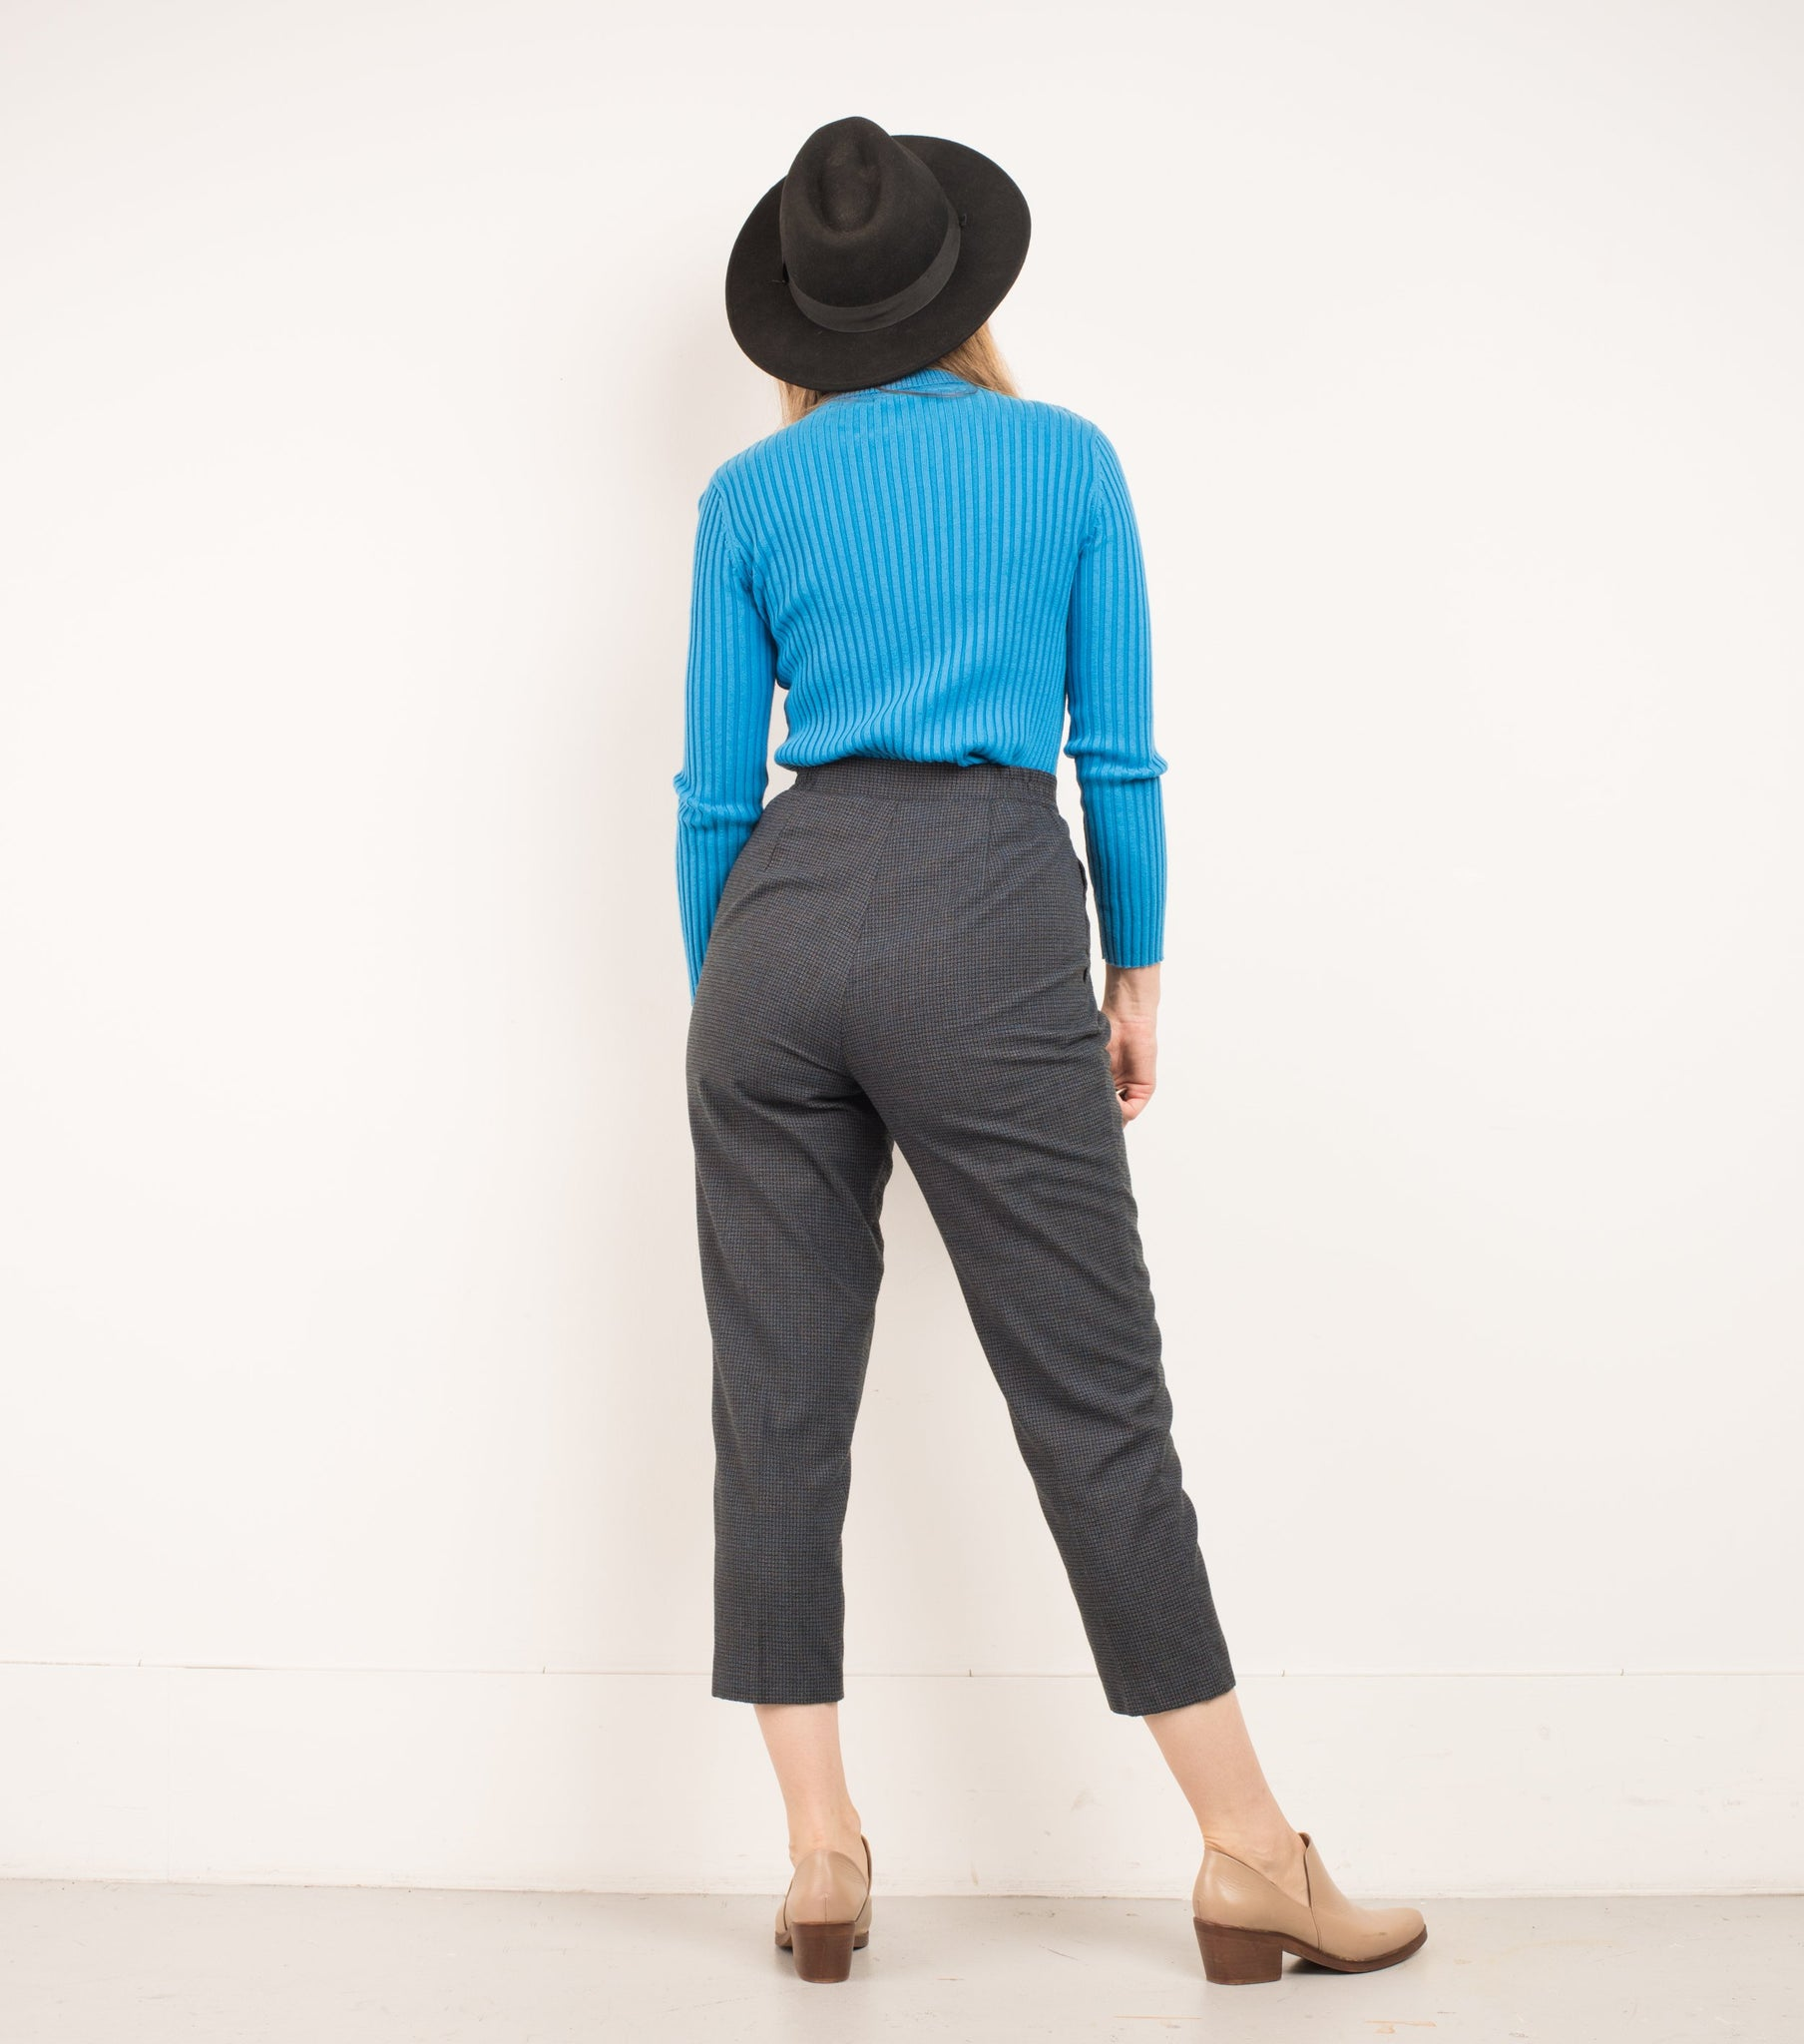 Vintage Grey + Blue Tweed Tapered Trousers / S/M - Closed Caption